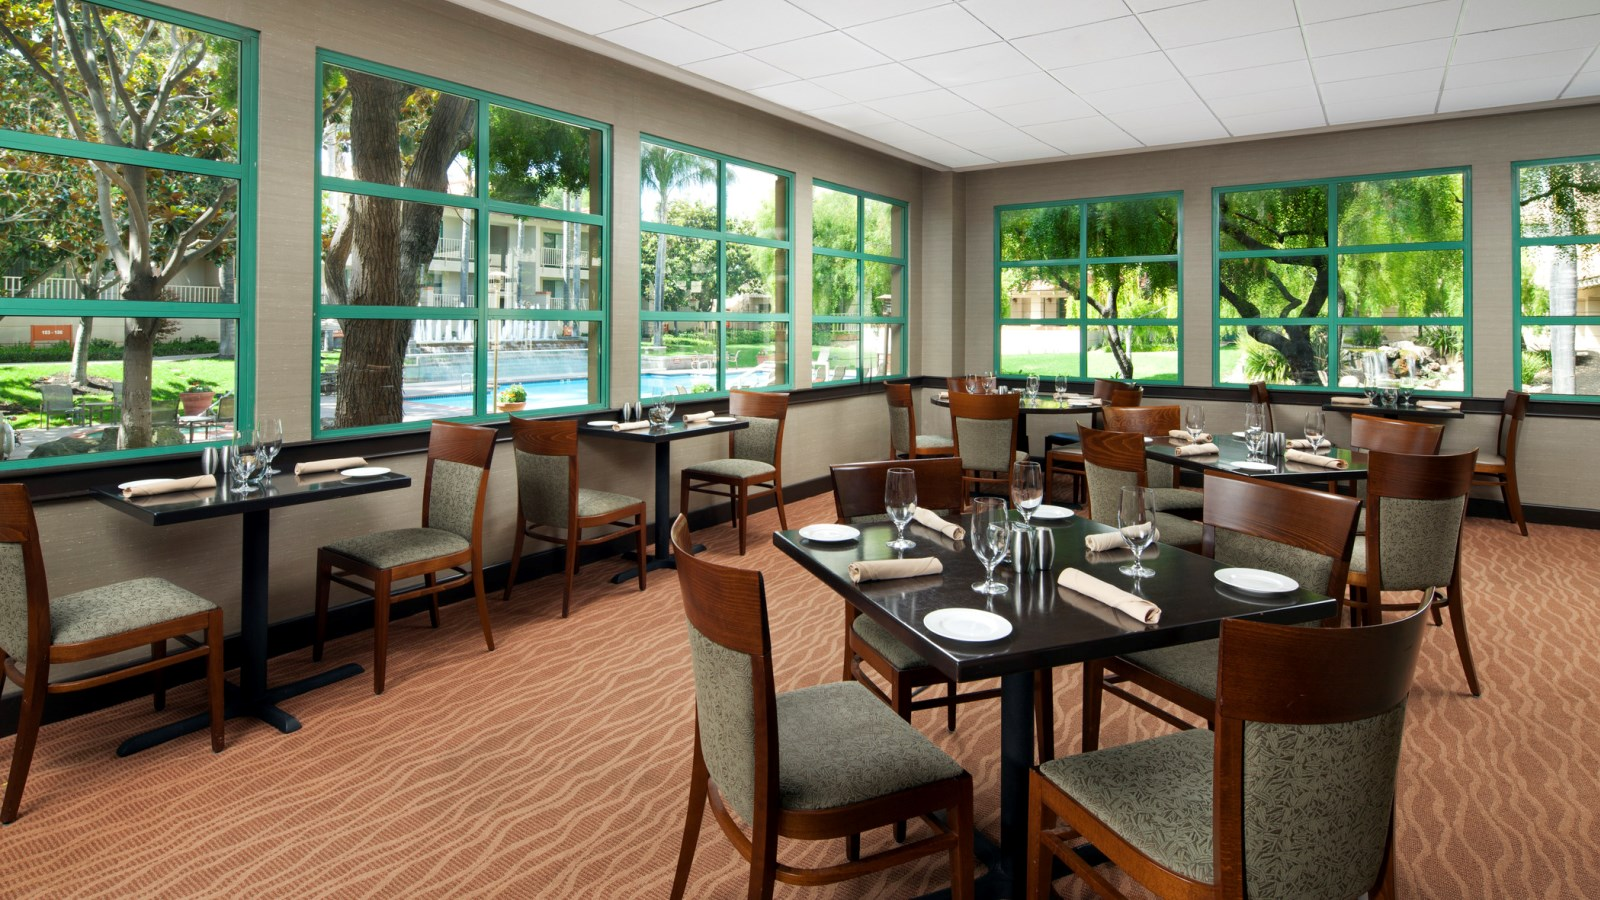 Enjoy bistro-style cuisine at our Milpitas restaurant, The Bistro, open for breakfast and lunch.